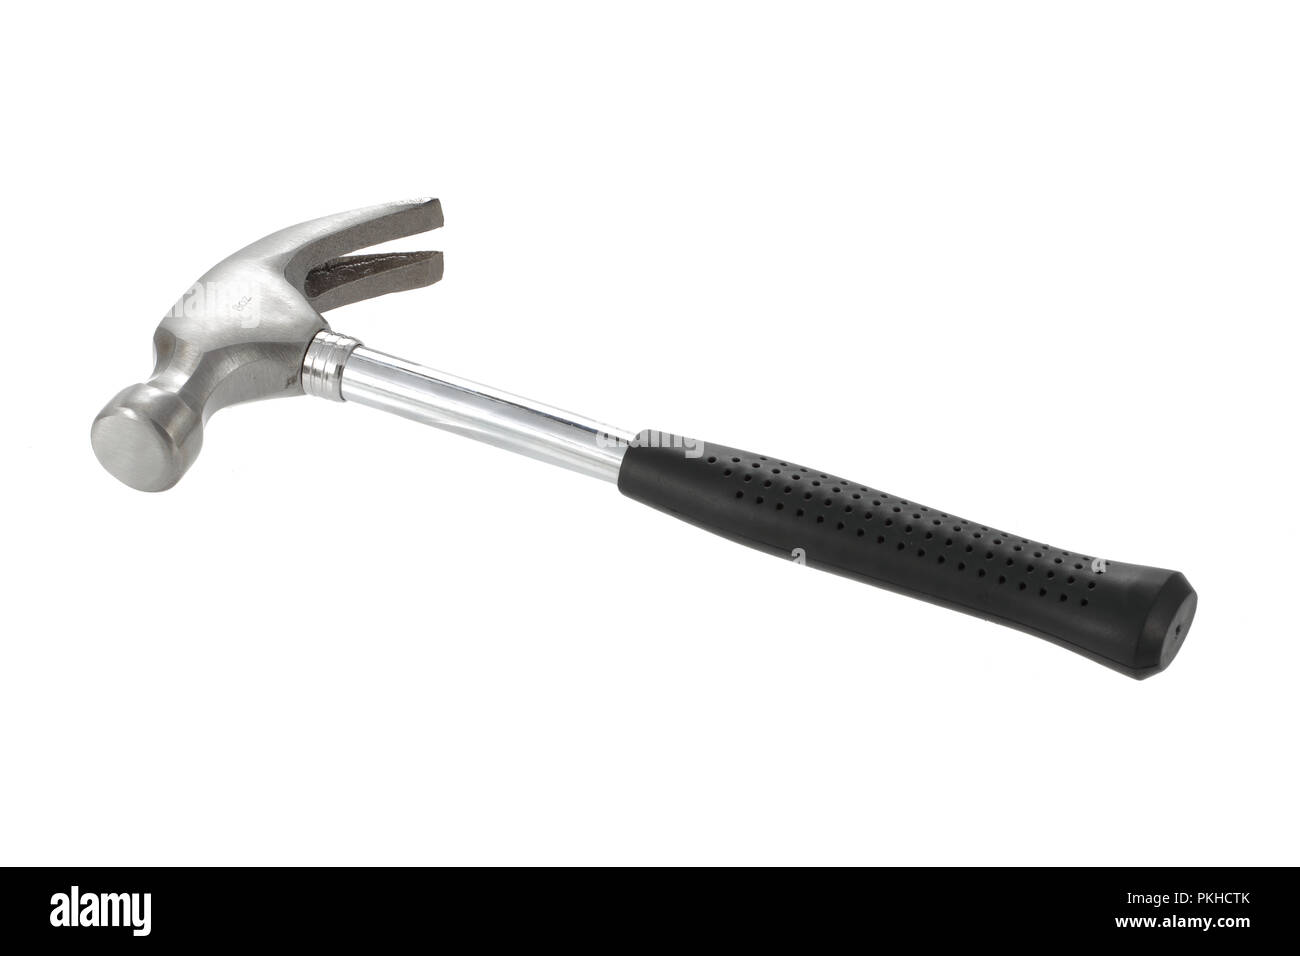 Small 8 oz claw hammer isolated on a white background - Stock Image